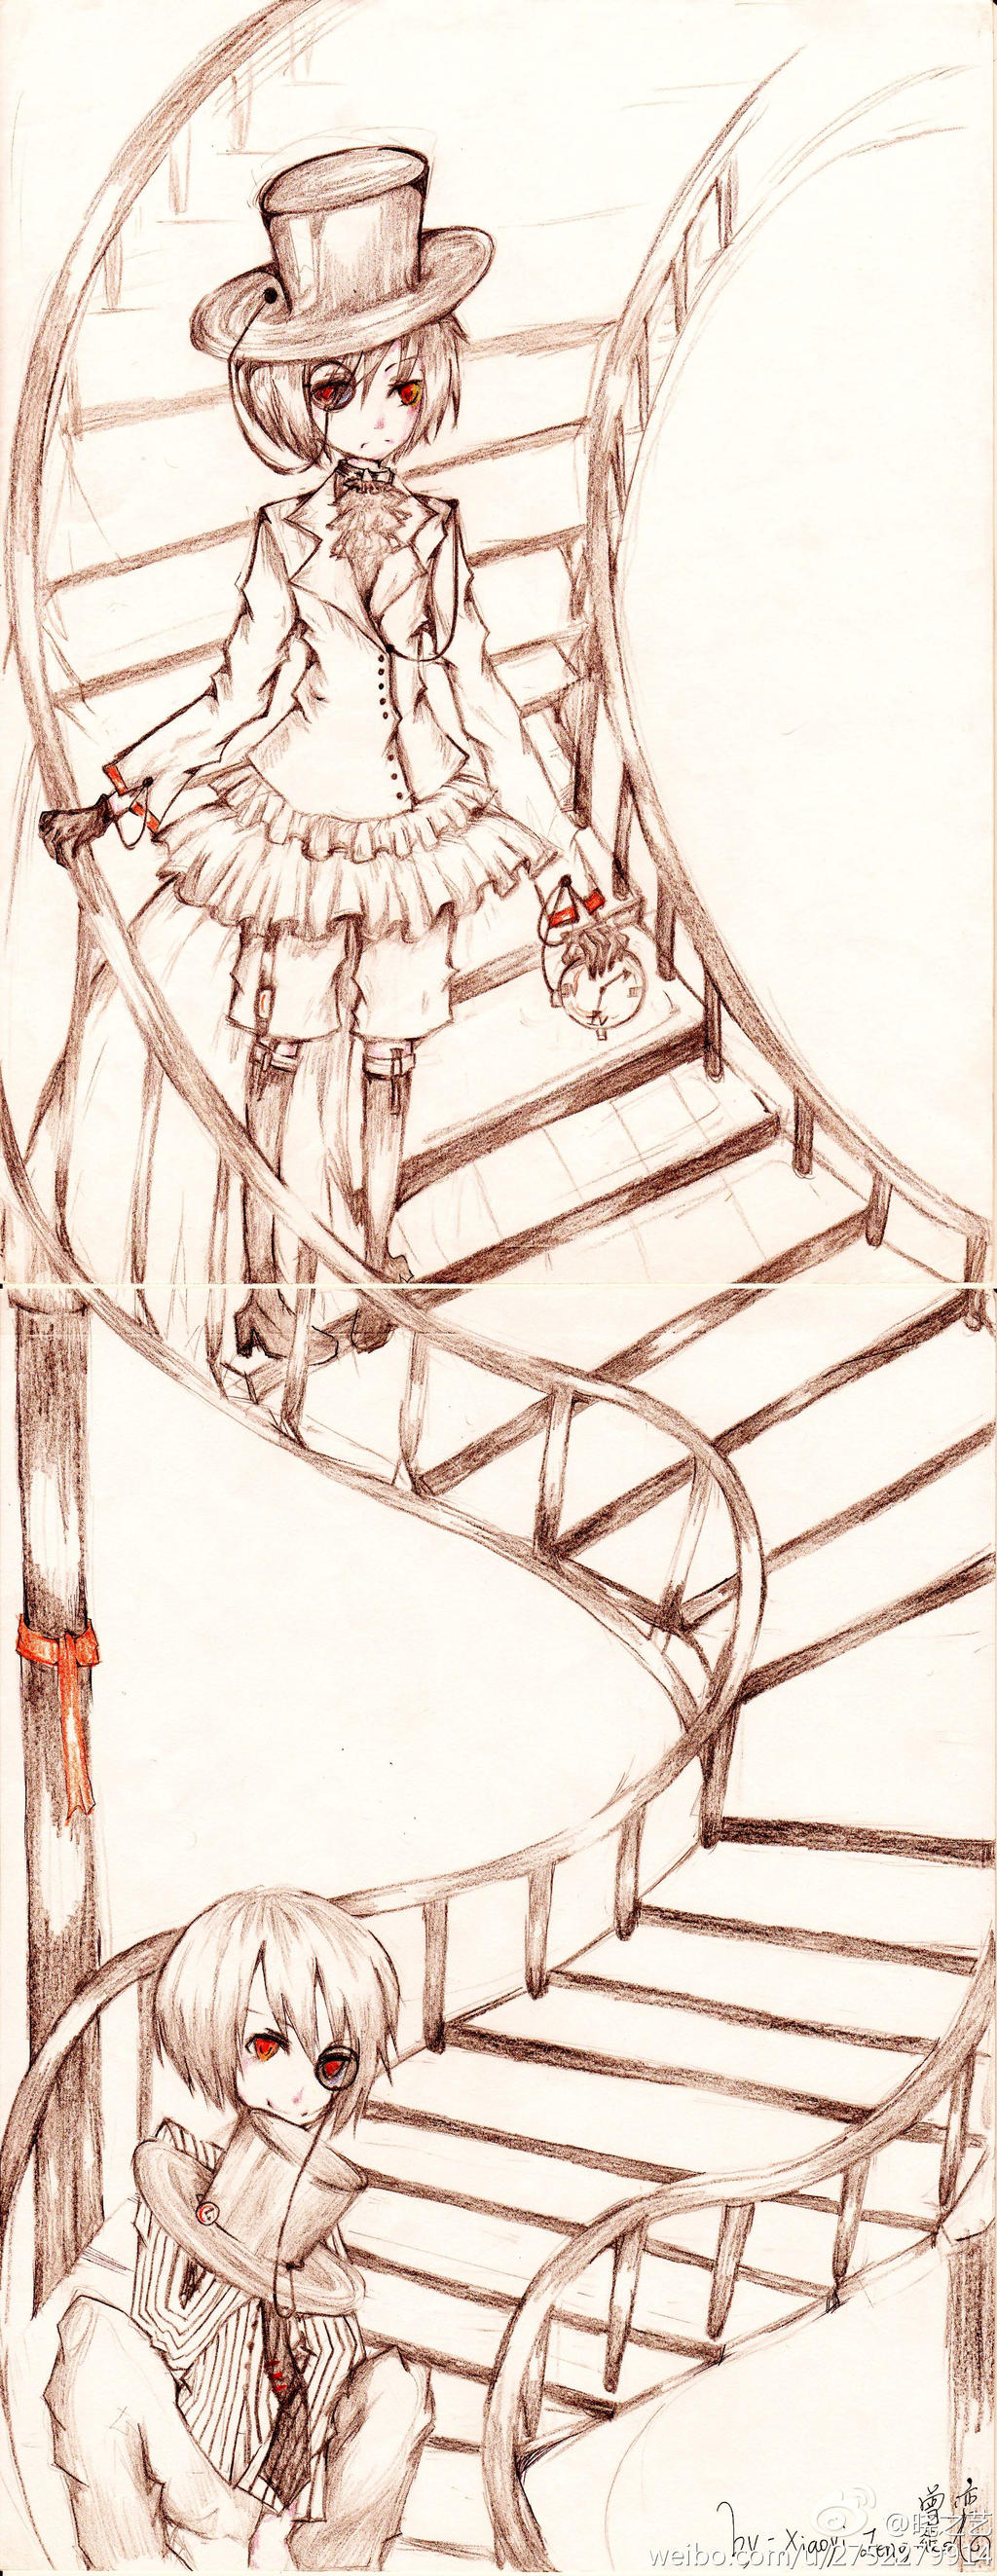 staircase by xiaoyizeng